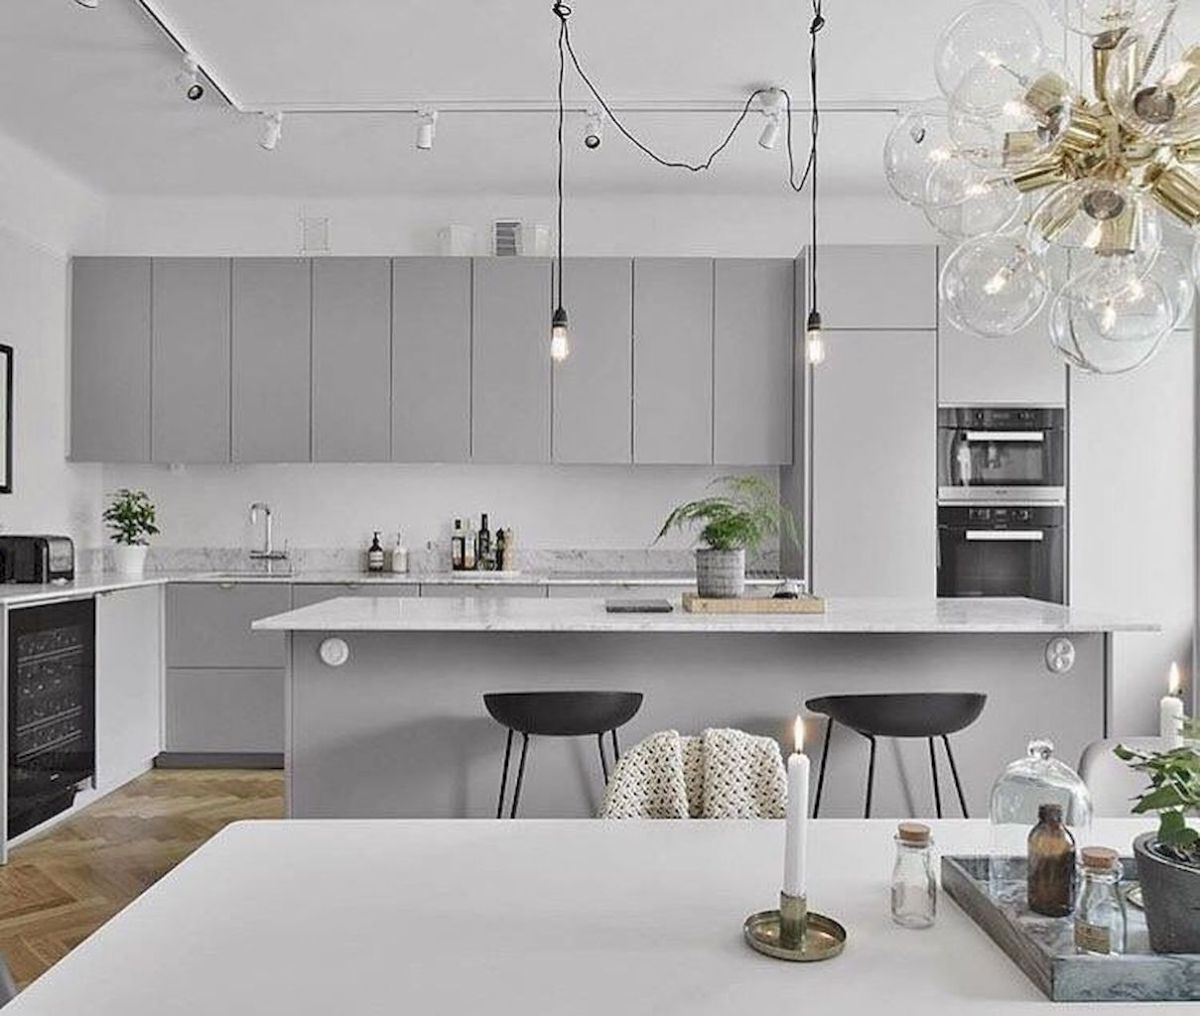 Awesome scandinavian kitchen remodel in for the home